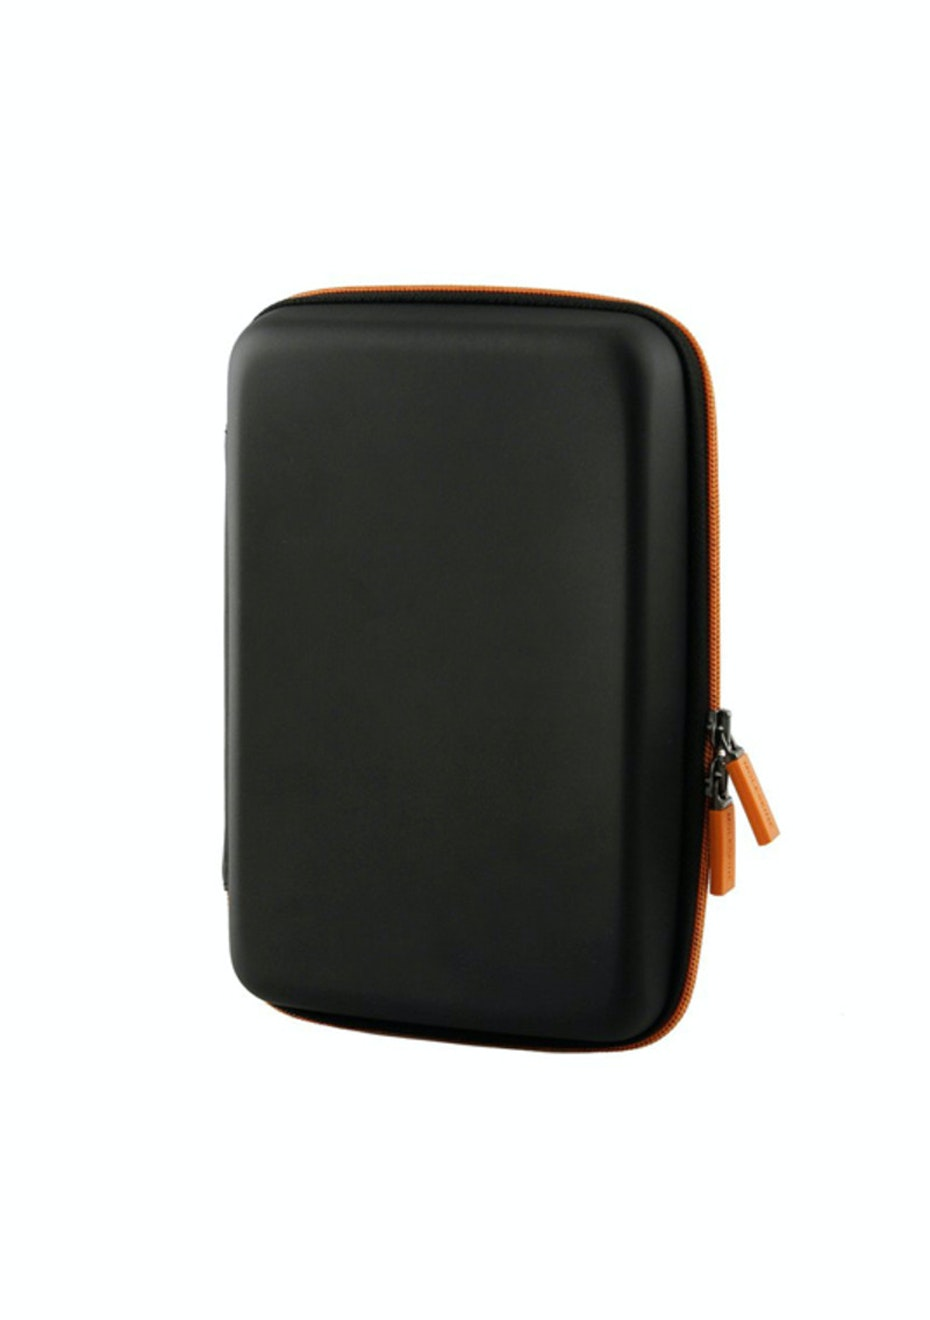 Moleskine - Device Shell - Large - Black